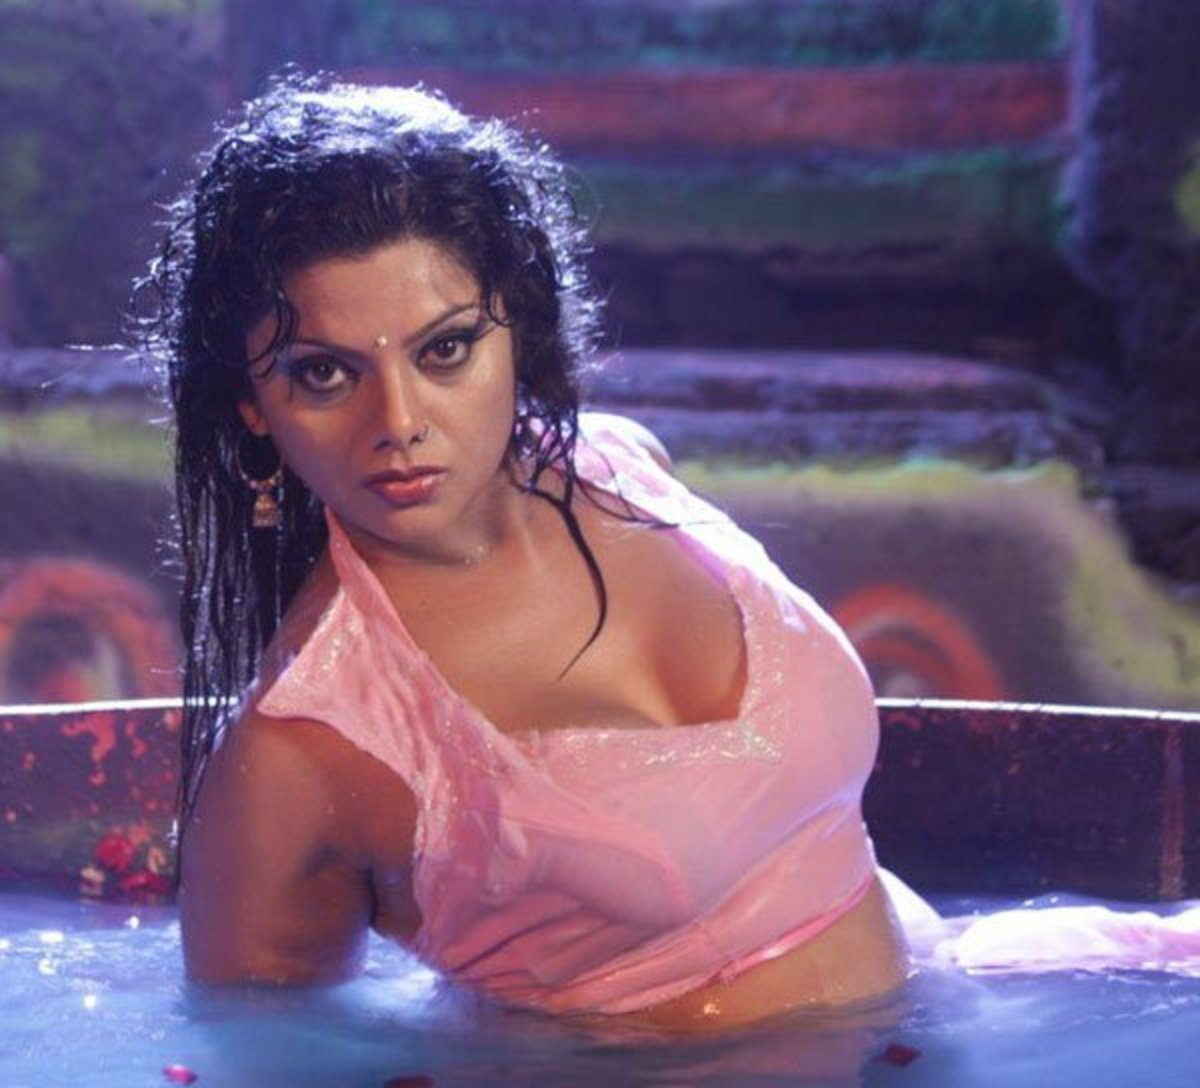 Swathi soaked in water